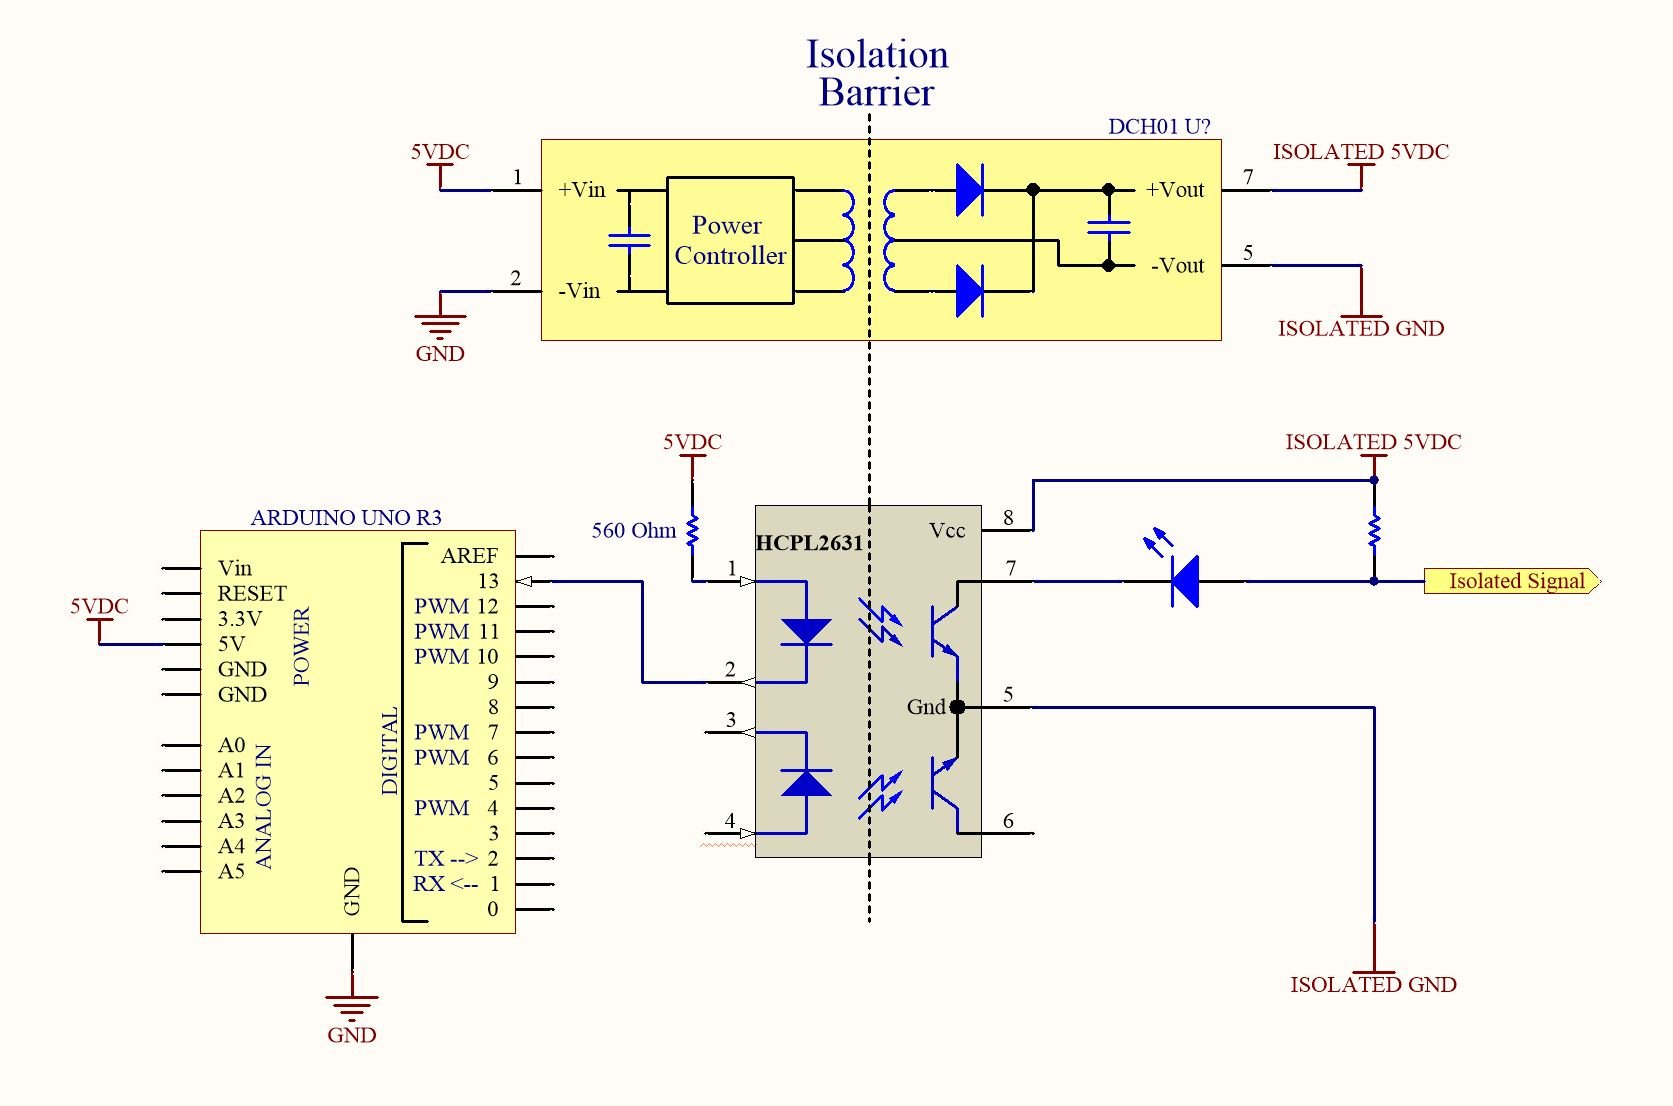 How to Eliminate Ground Loops with Signal Isolation - Projects